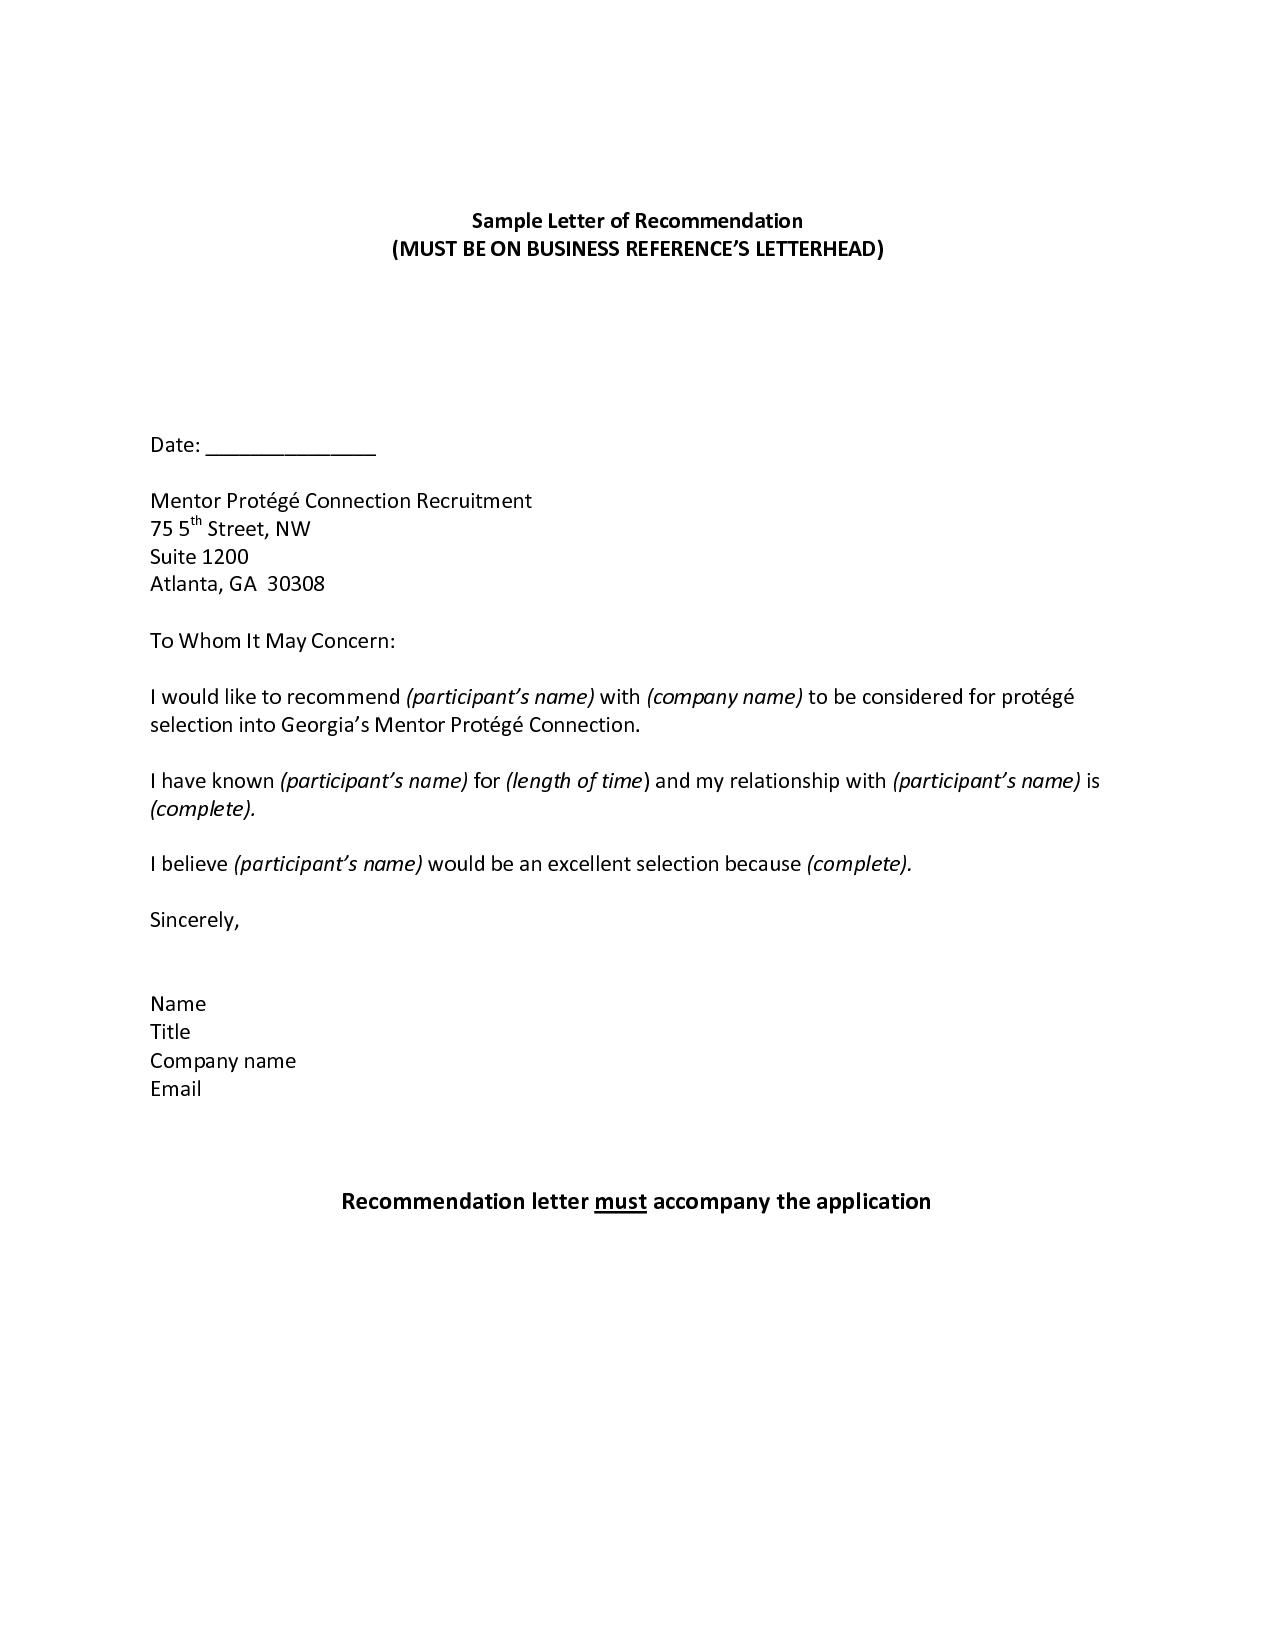 Business Recommendation Letter Sample | Professional Reference Sample Recommendation Letter Jos